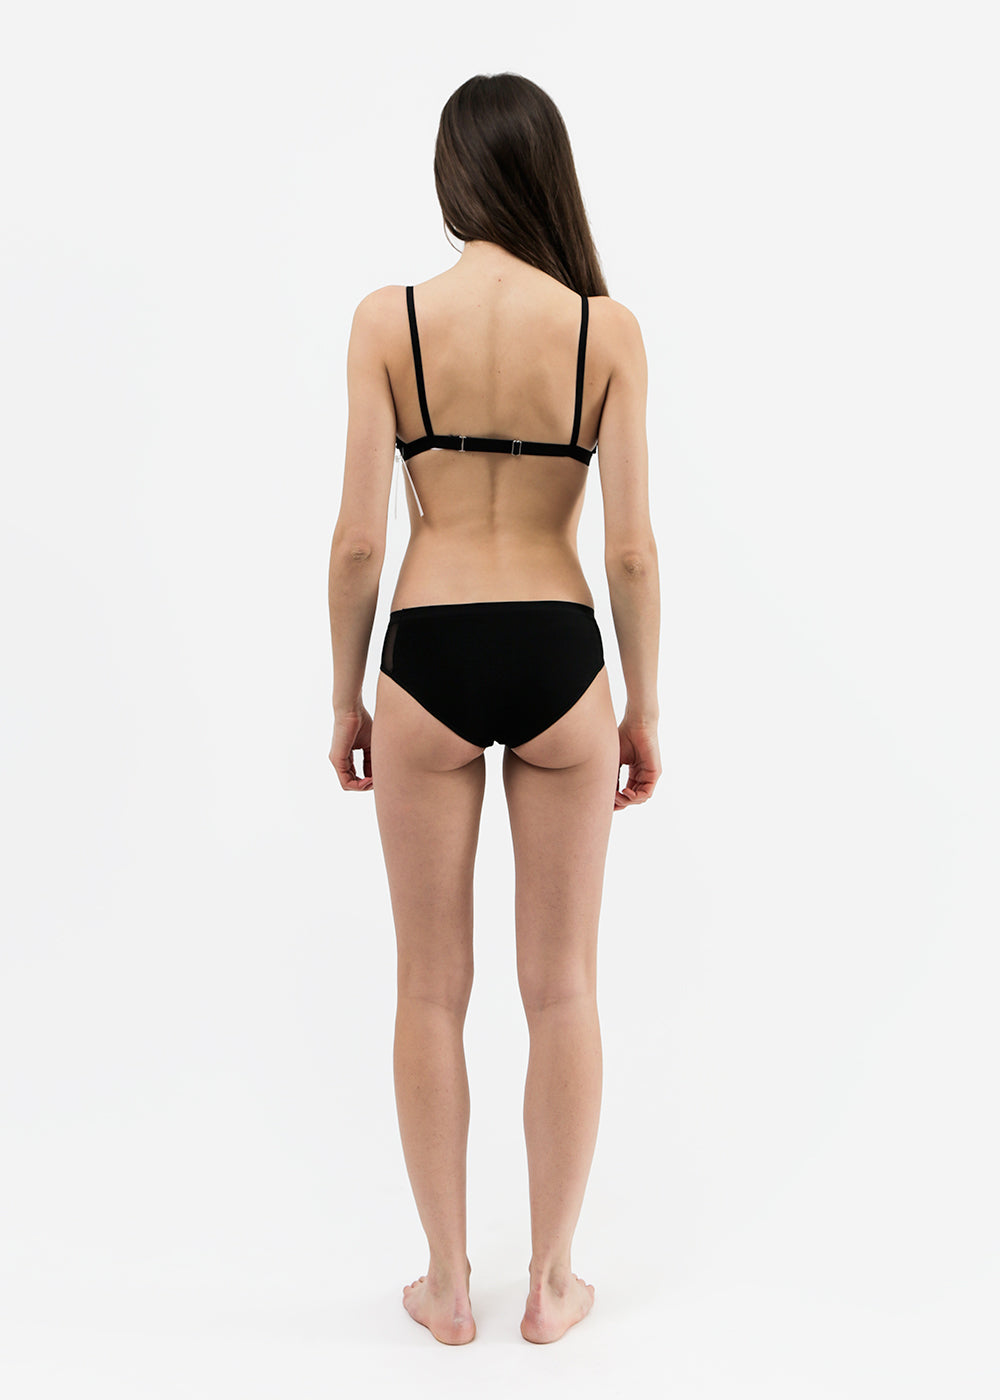 Mary Young Mesh Panel Bikini — Shop sustainable fashion and slow fashion at New Classics Studios